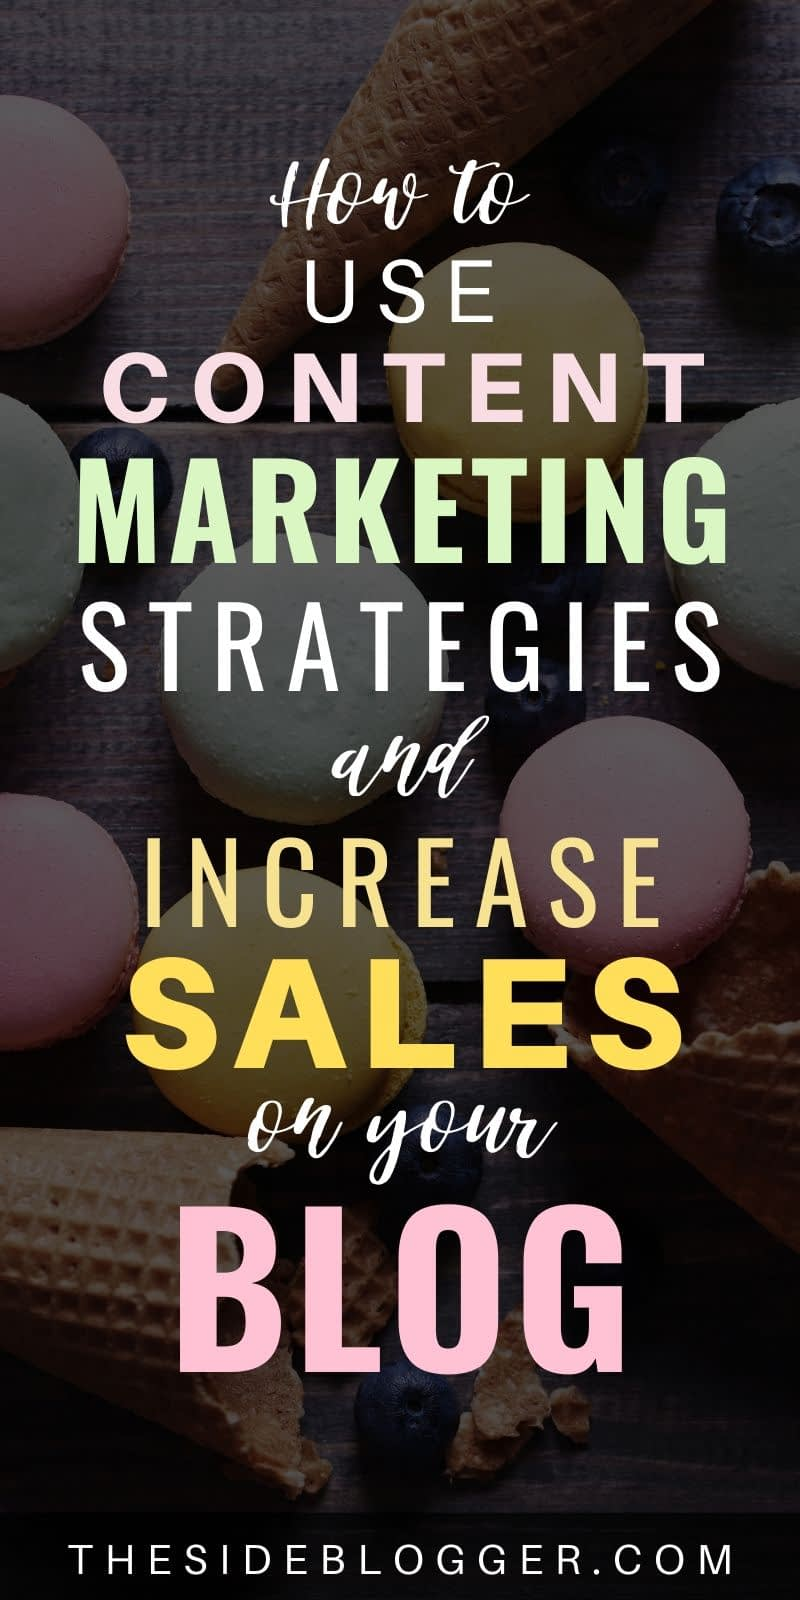 How to use content marketing strategies to increase sales.